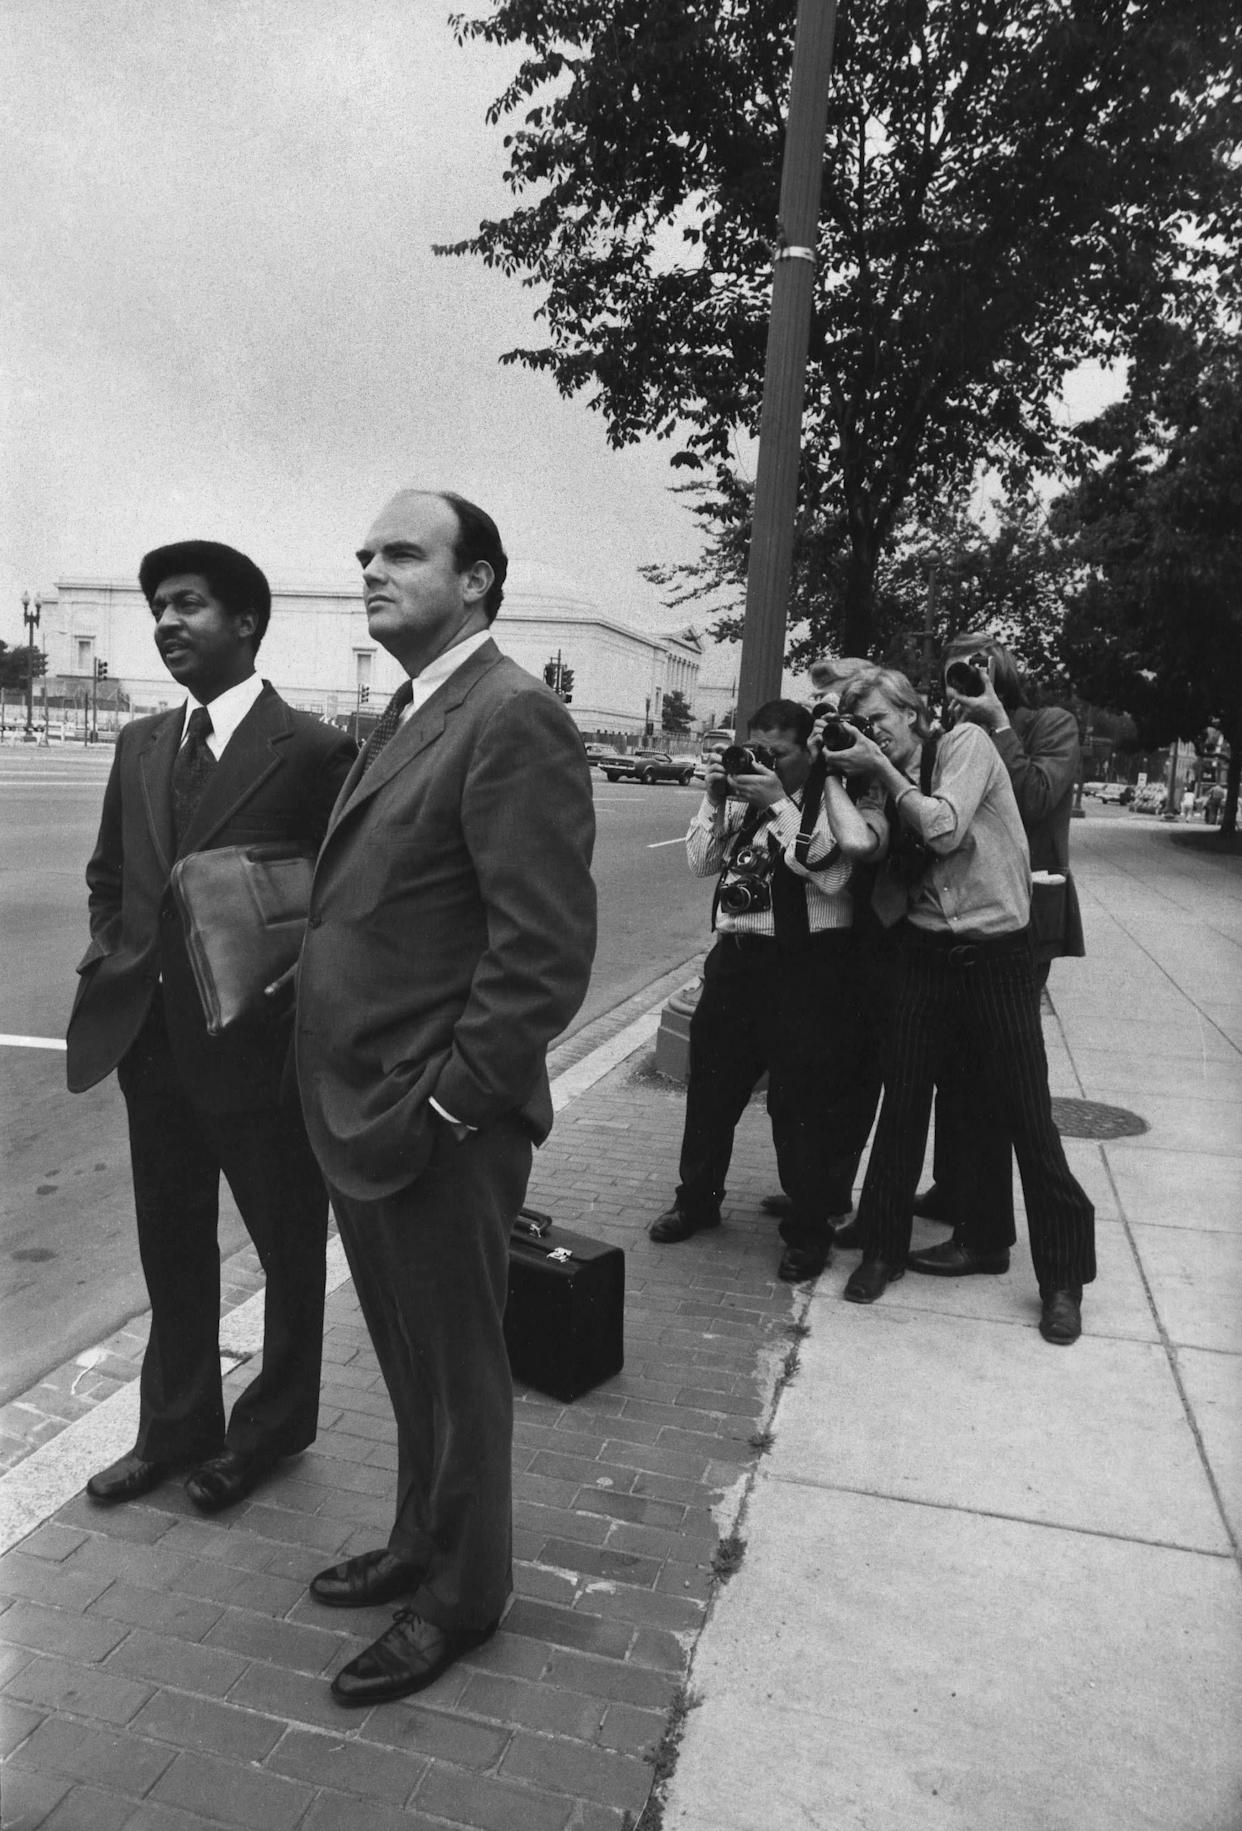 WASHINGTON - NOVEMBER: (NO U.S. TABLOID SALES) Former Senior Advisor to President Richard Nixon, John Ehrilchman waits for a cab in front of the Federal courthouse after testifying in the Watergate scandal on November 1973 in Washington DC. Ehrilchman was indited for Watergate Crimes. (Photo by David Hume Kennerly/Getty images)